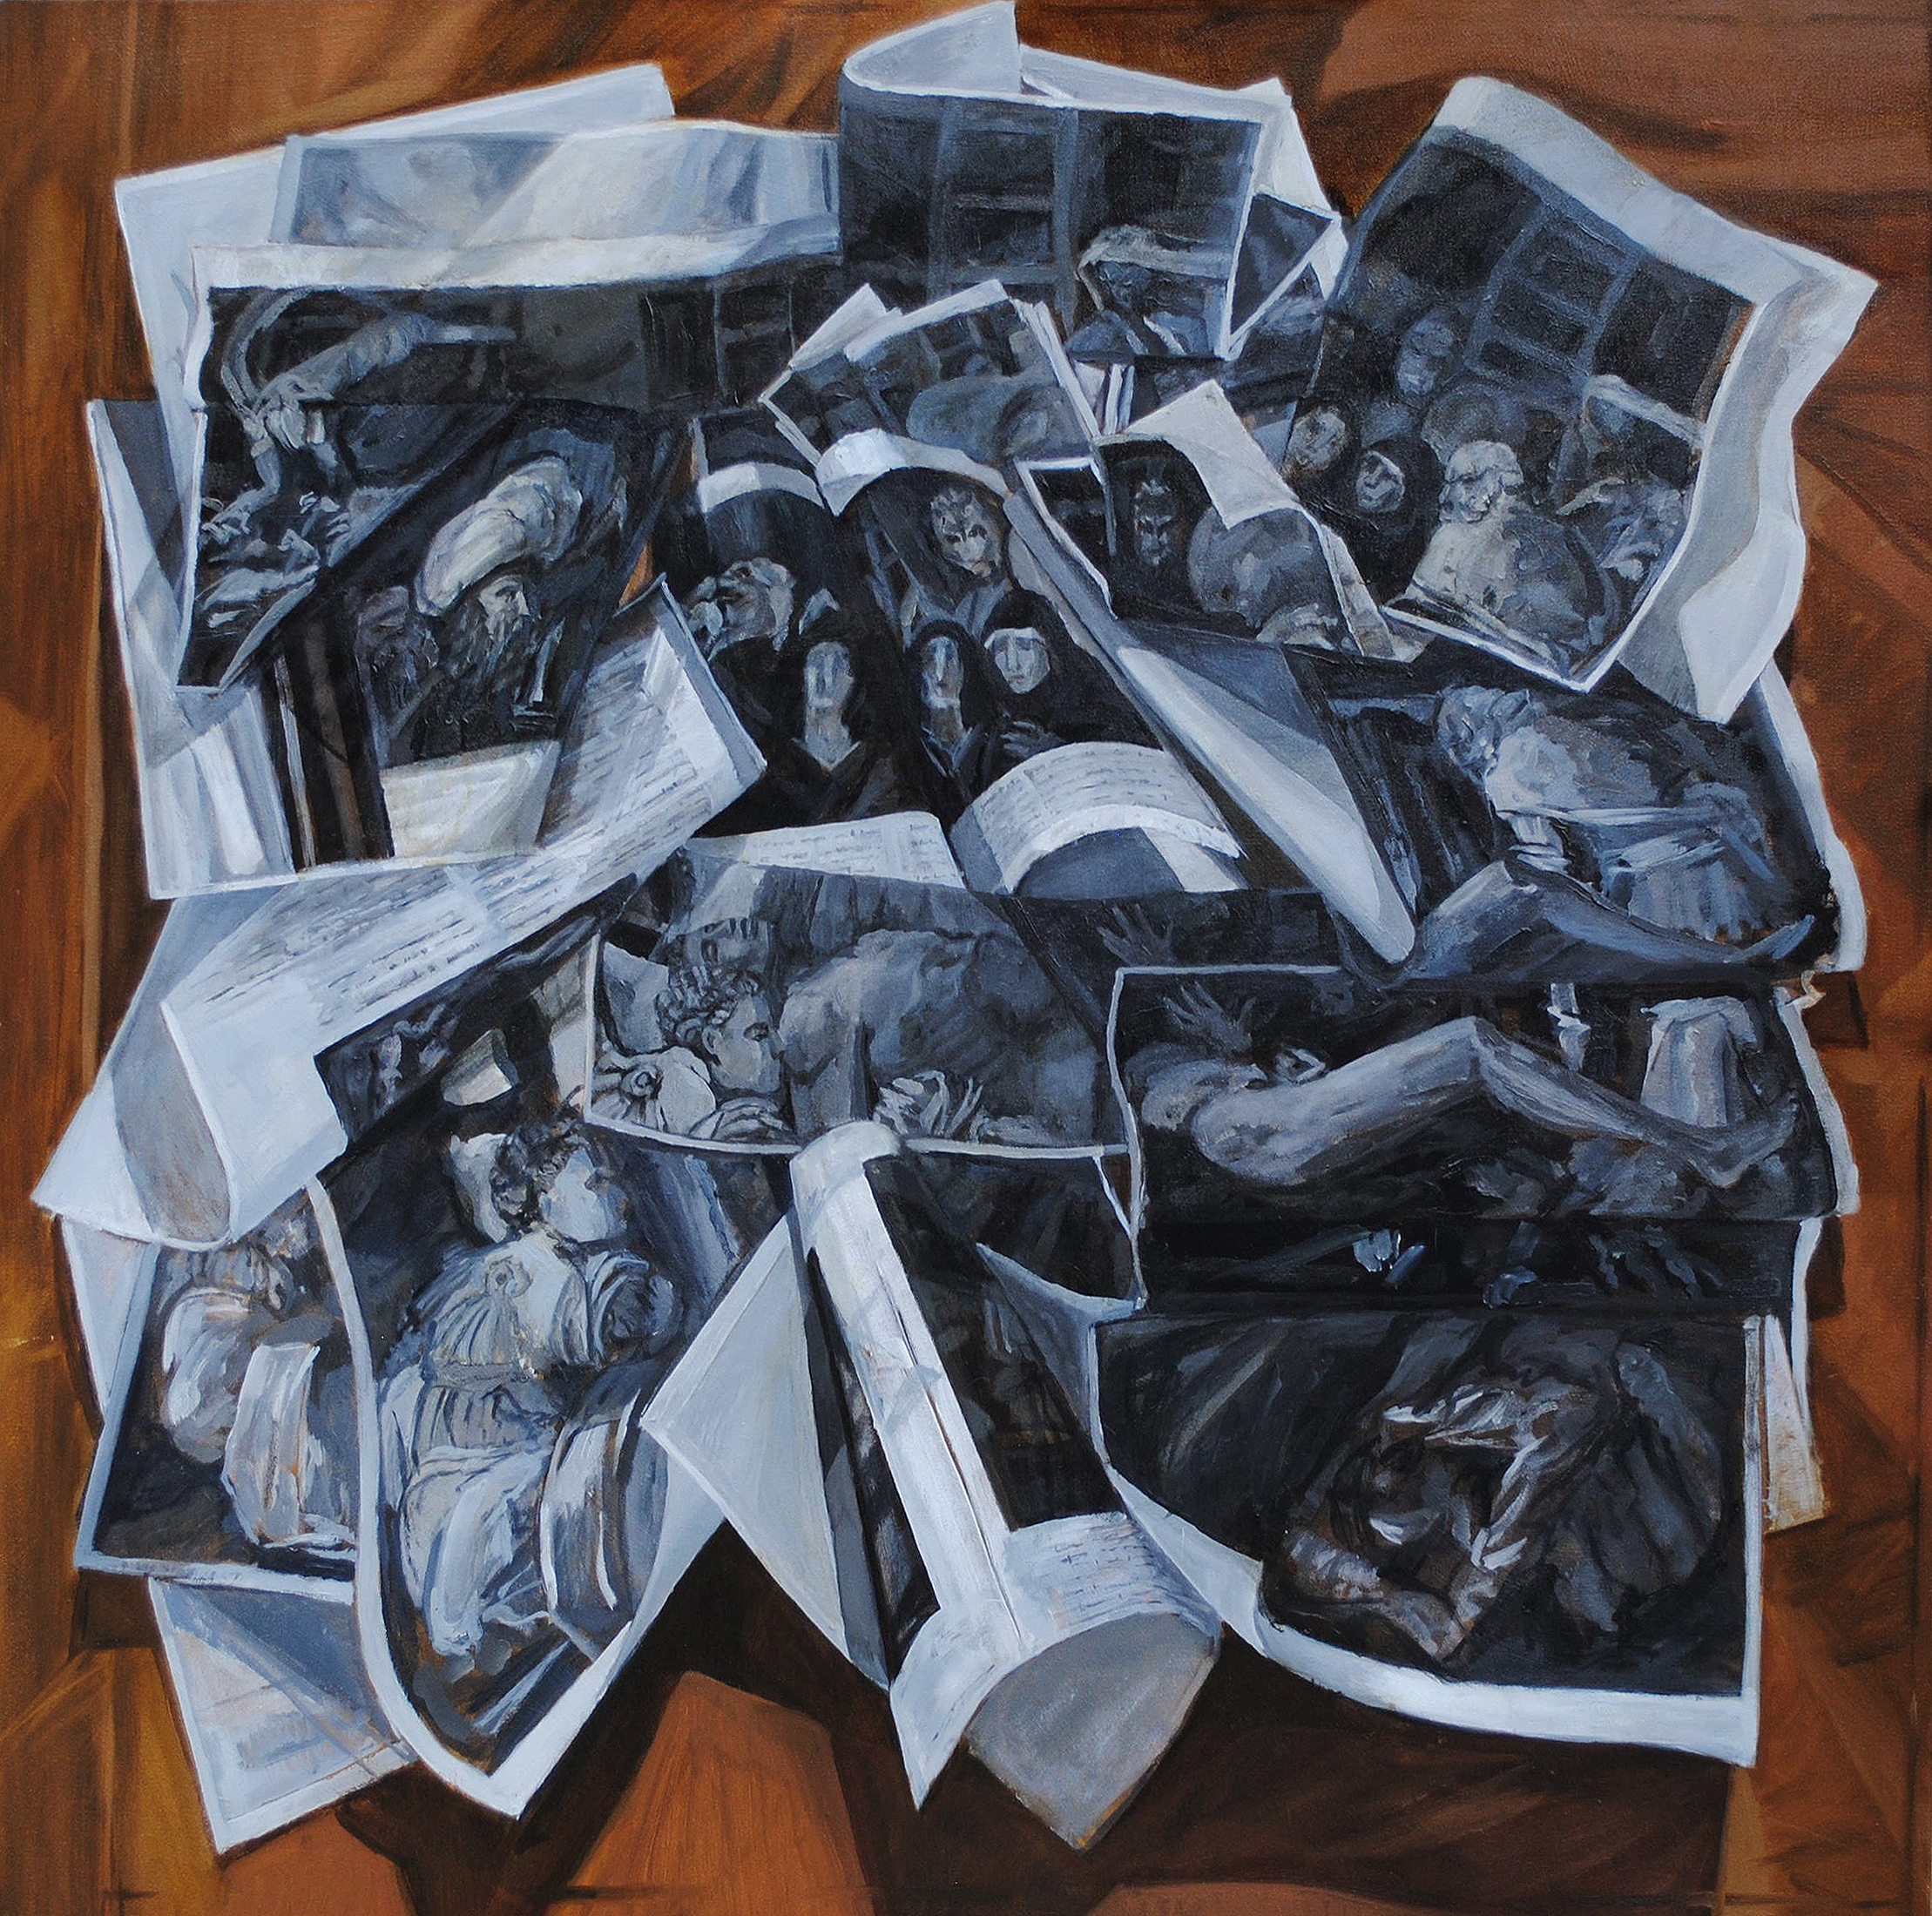 Teddy Johnson,  The Deposition, Oil on canvas, 31.5 x31.5